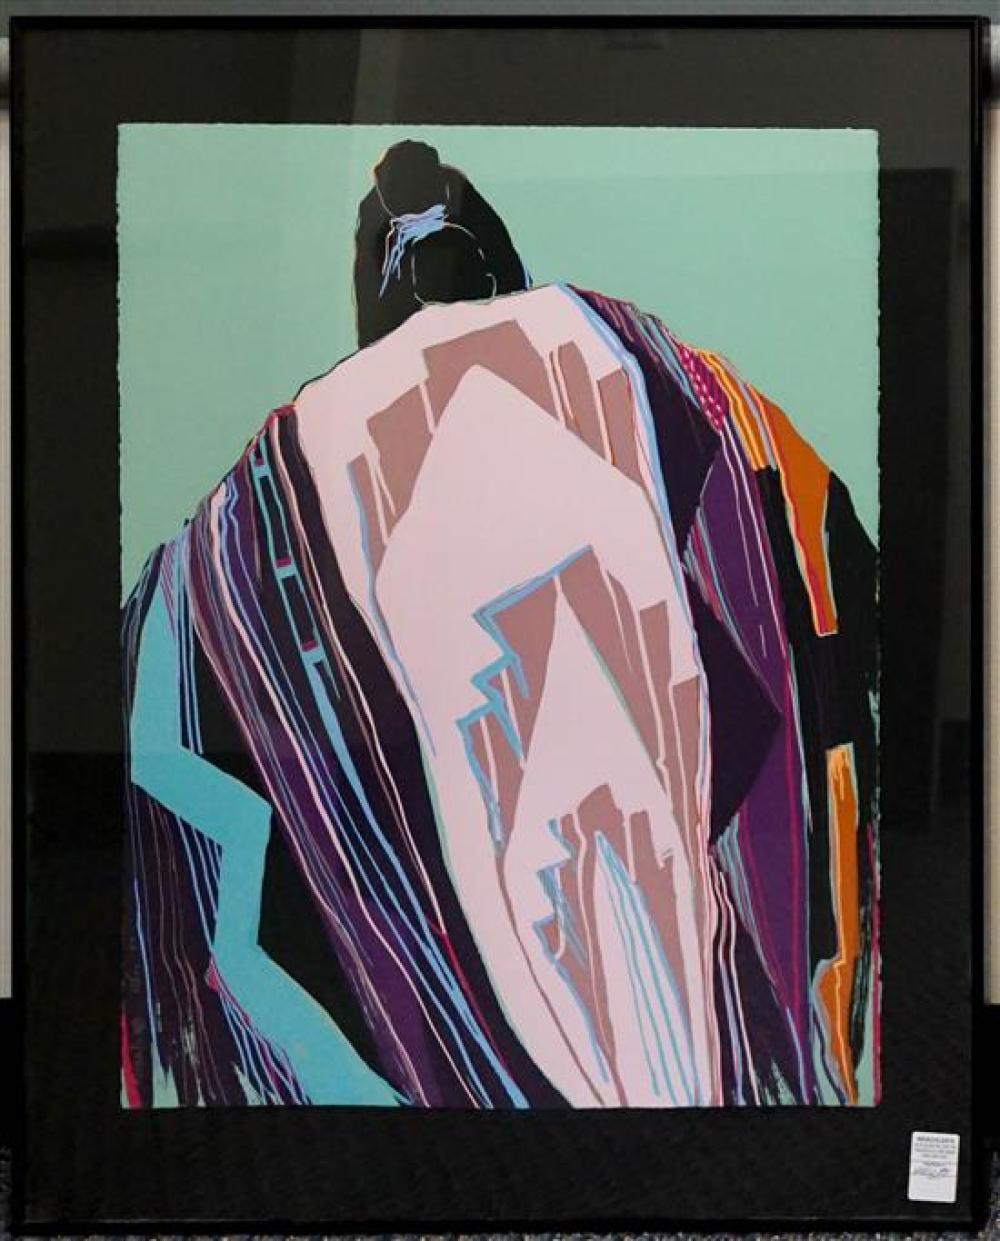 Dolona Roberts, 20th Century, Blanket, Serigraph, Frame: 36 x 29 inches